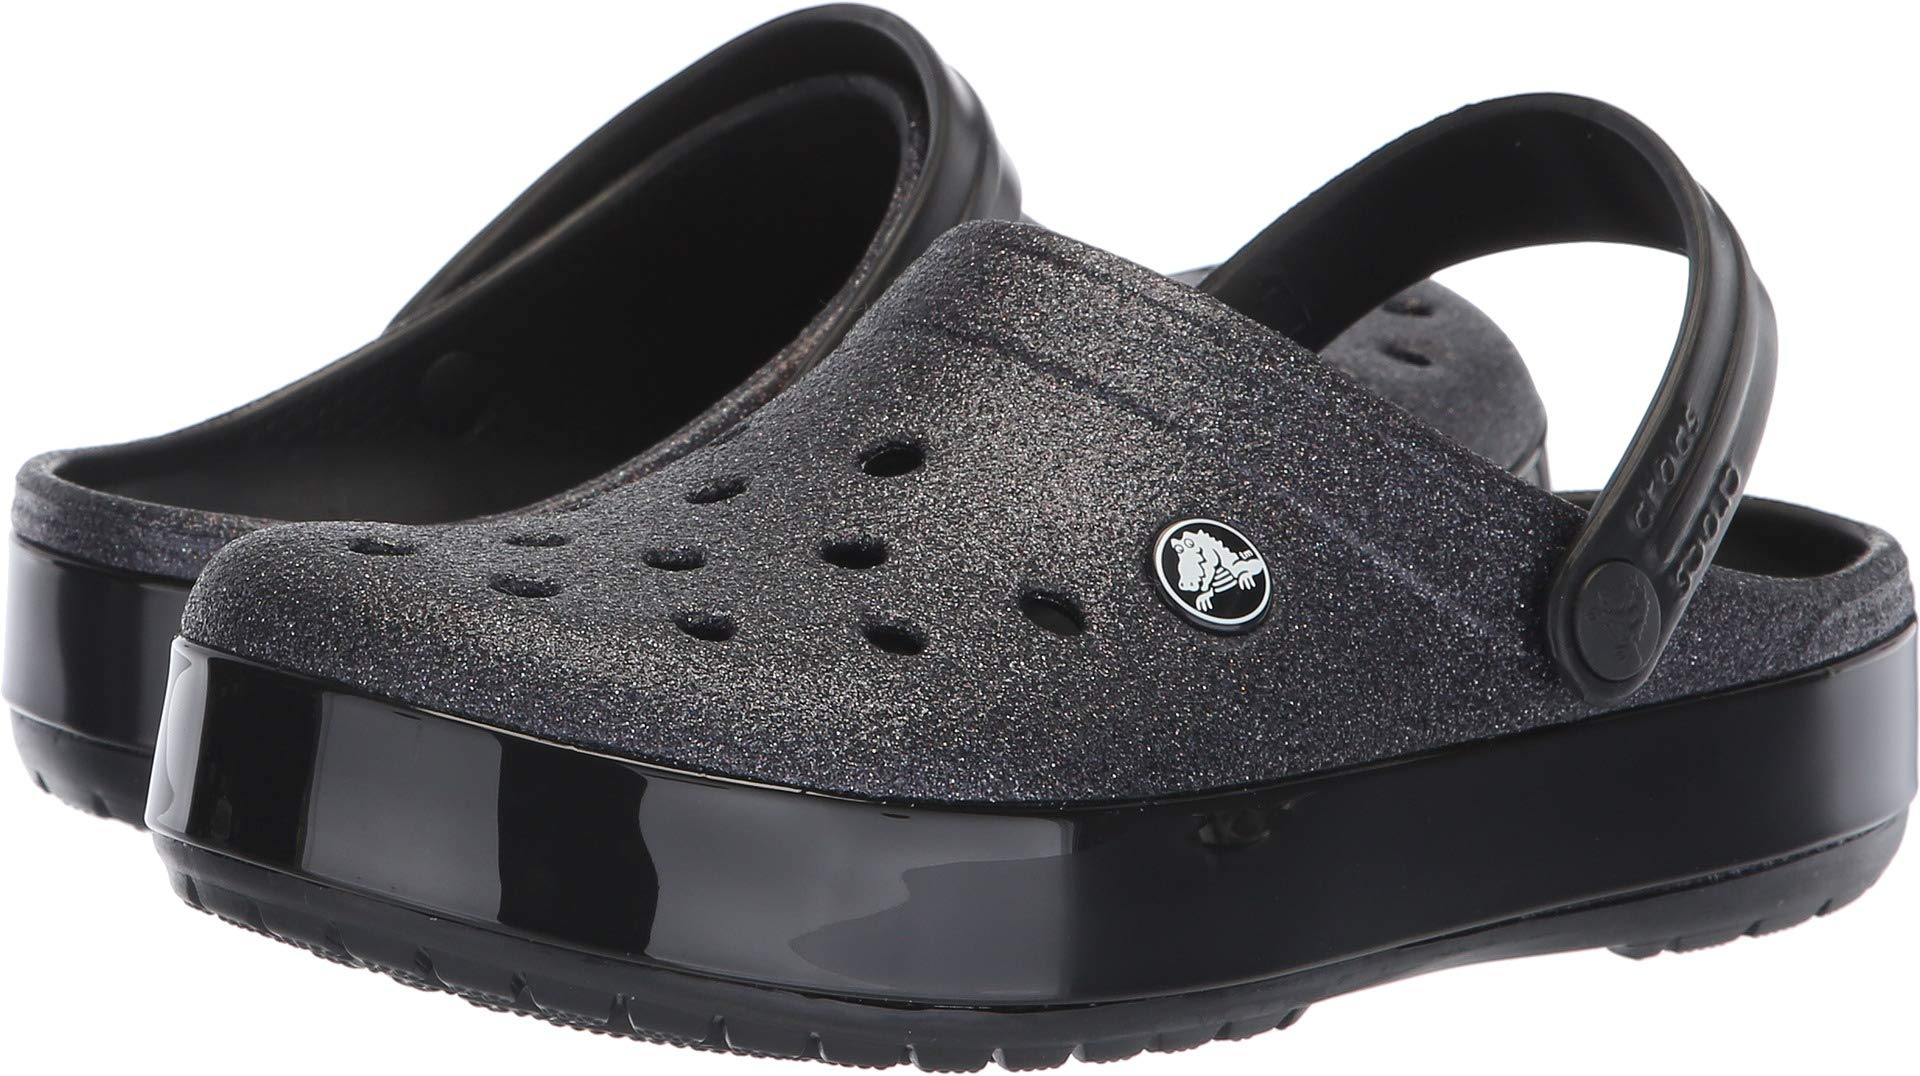 Crocs Crocband Glitter Clog, Black, 7 US Men / 9 US Women